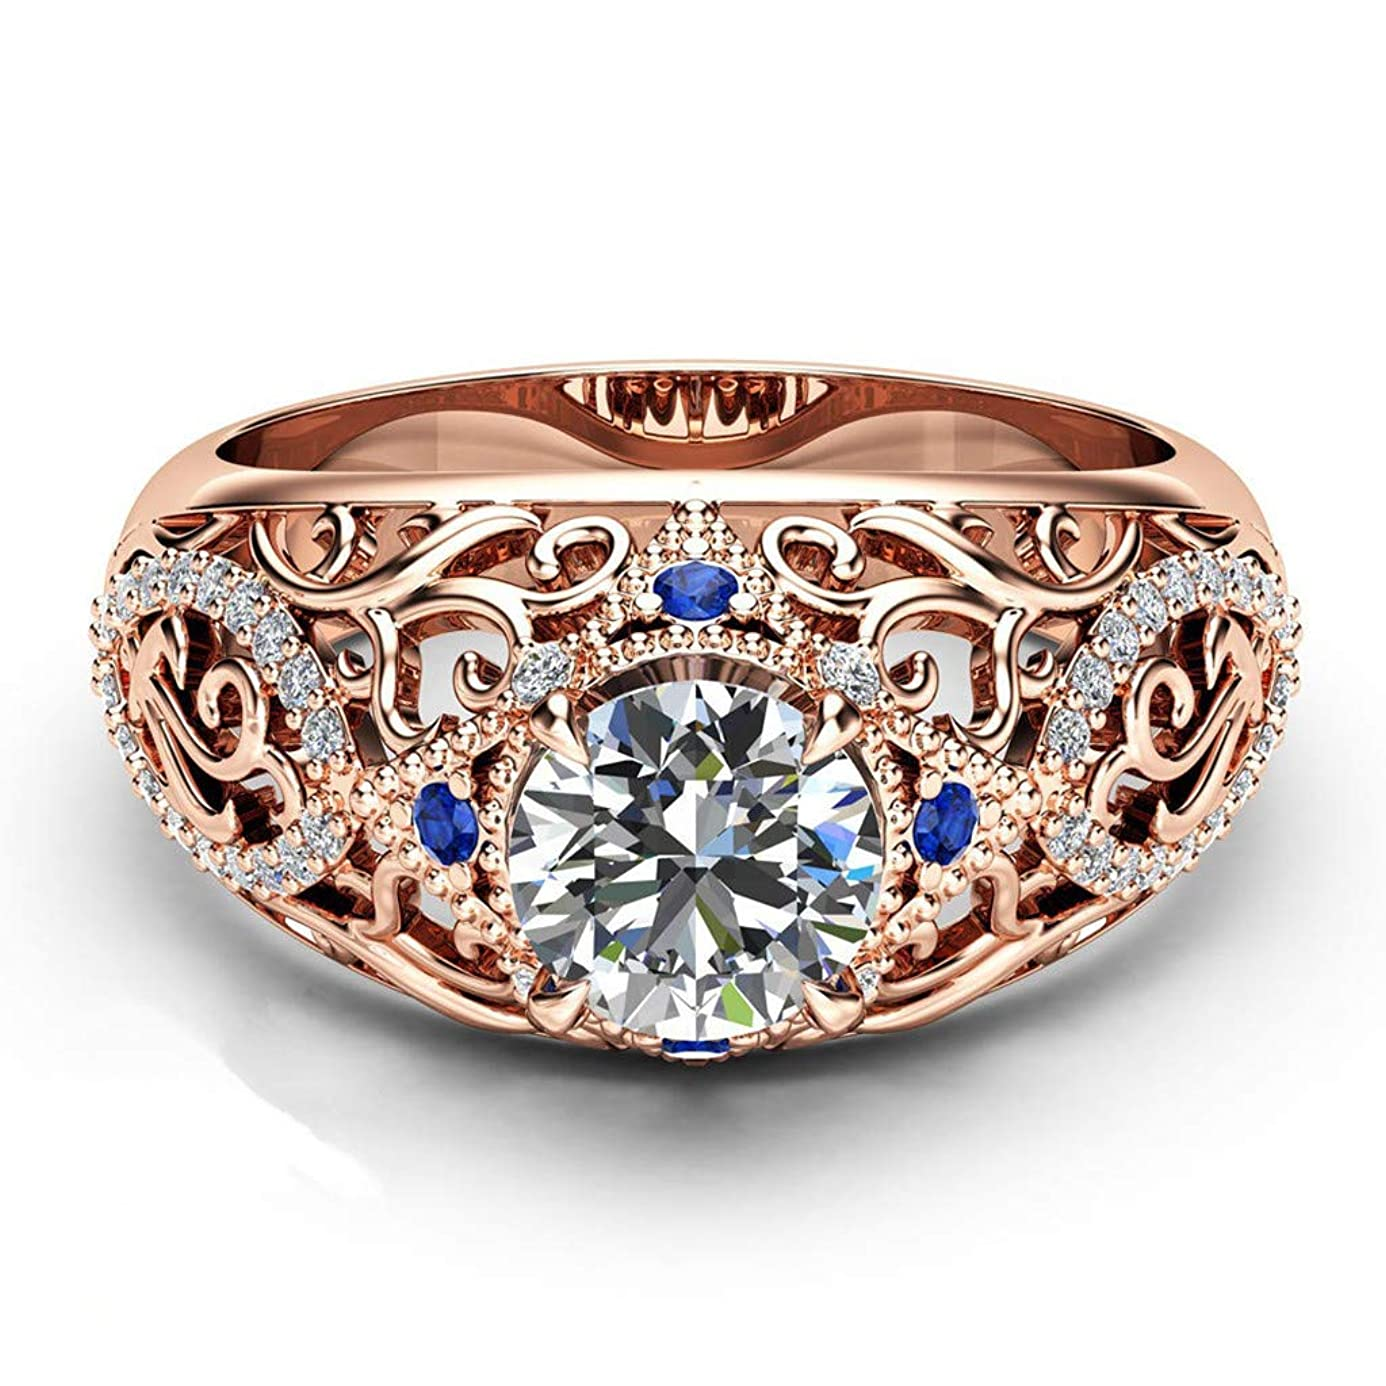 Kintaz Women's Engagement Wedding Ring European and American Fashion Luxury Simulation Green Diamonds Jewelry (6, Rose Gold)